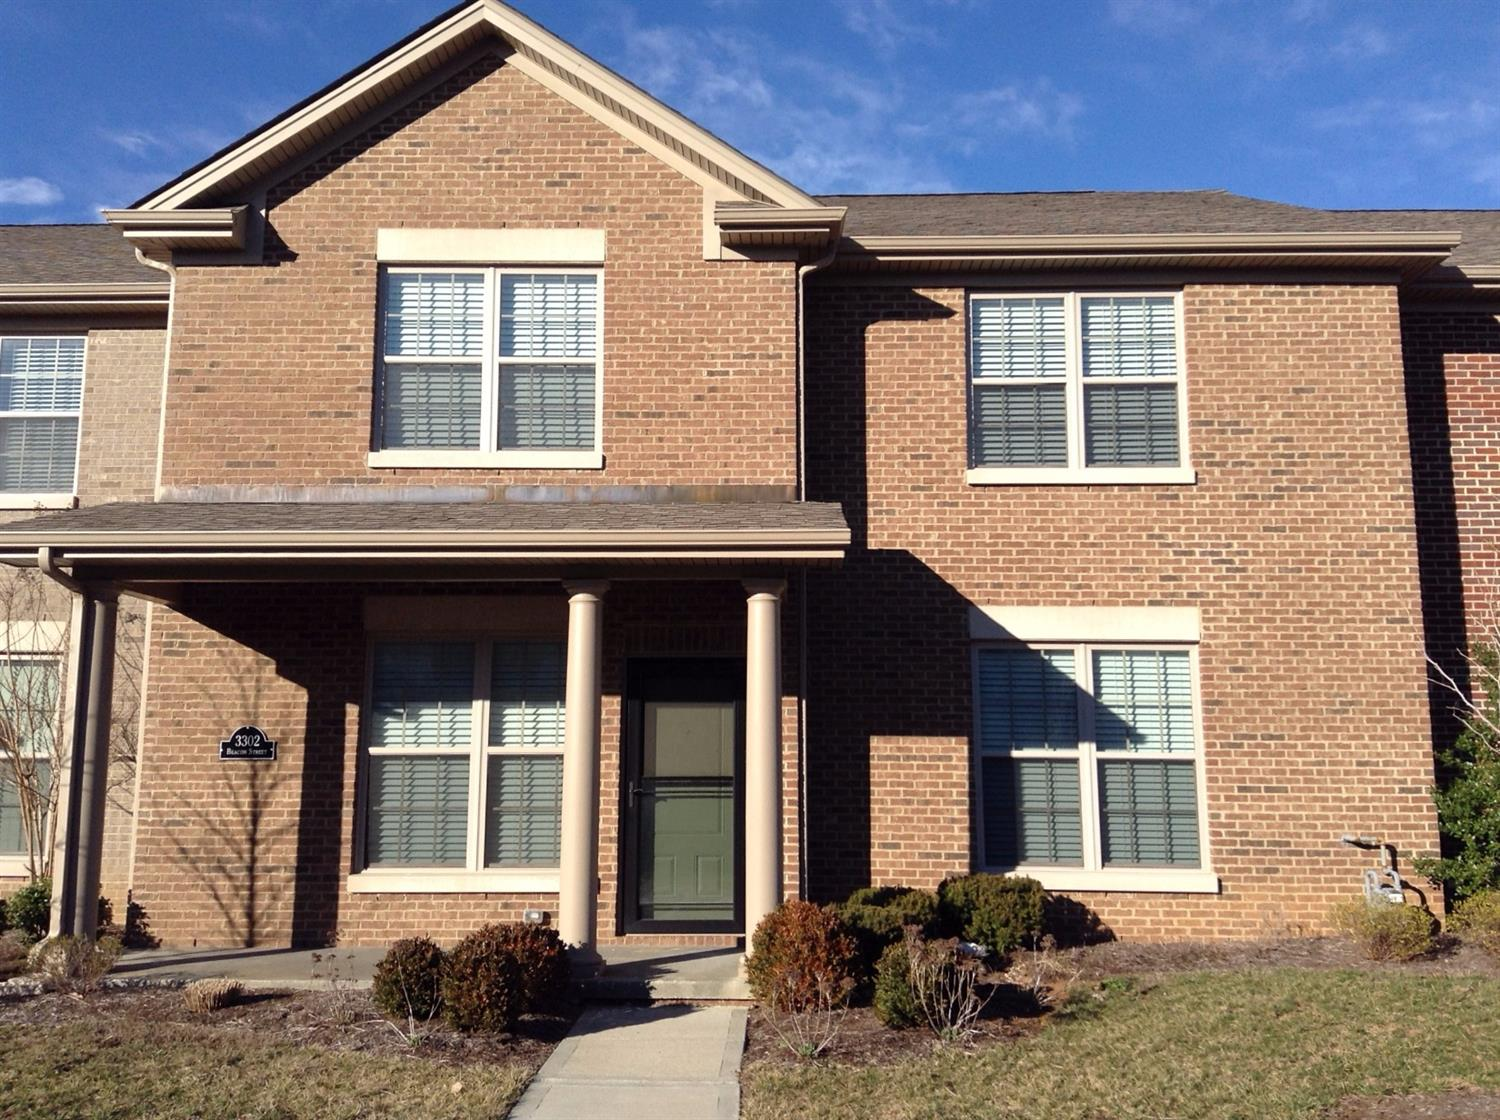 3302 Beacon, Lexington, KY 40513